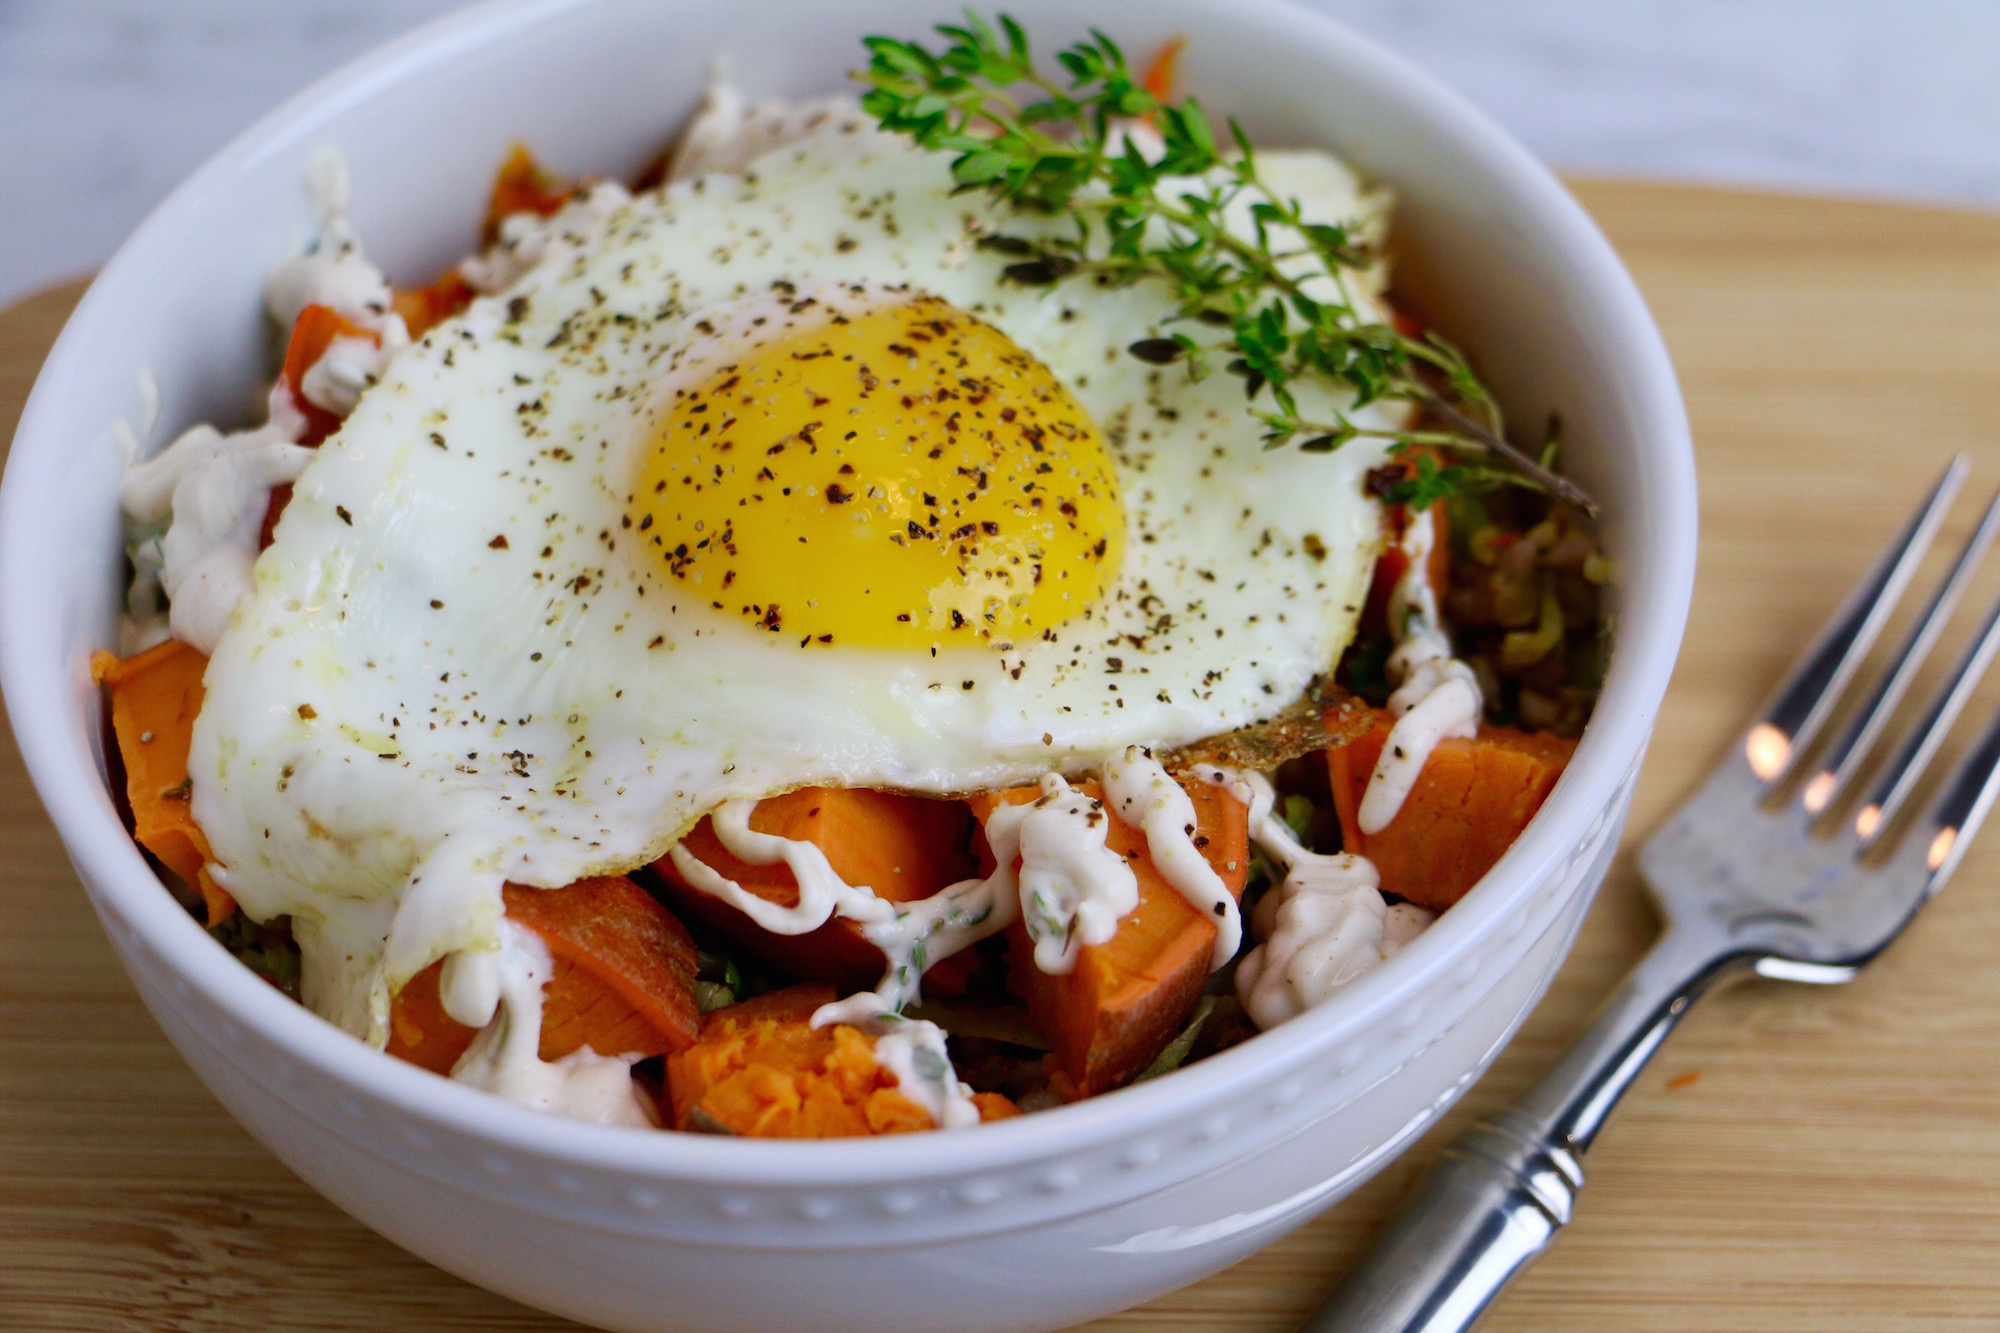 Buckwheat Breakfast Bowl with Savory Roasted Veggies, a Garlic Lemon Tahini Sauce, and a Fried Egg on top! This bowl is healthy, gluten-free, and vegetarian. Make it vegan by removing the egg.